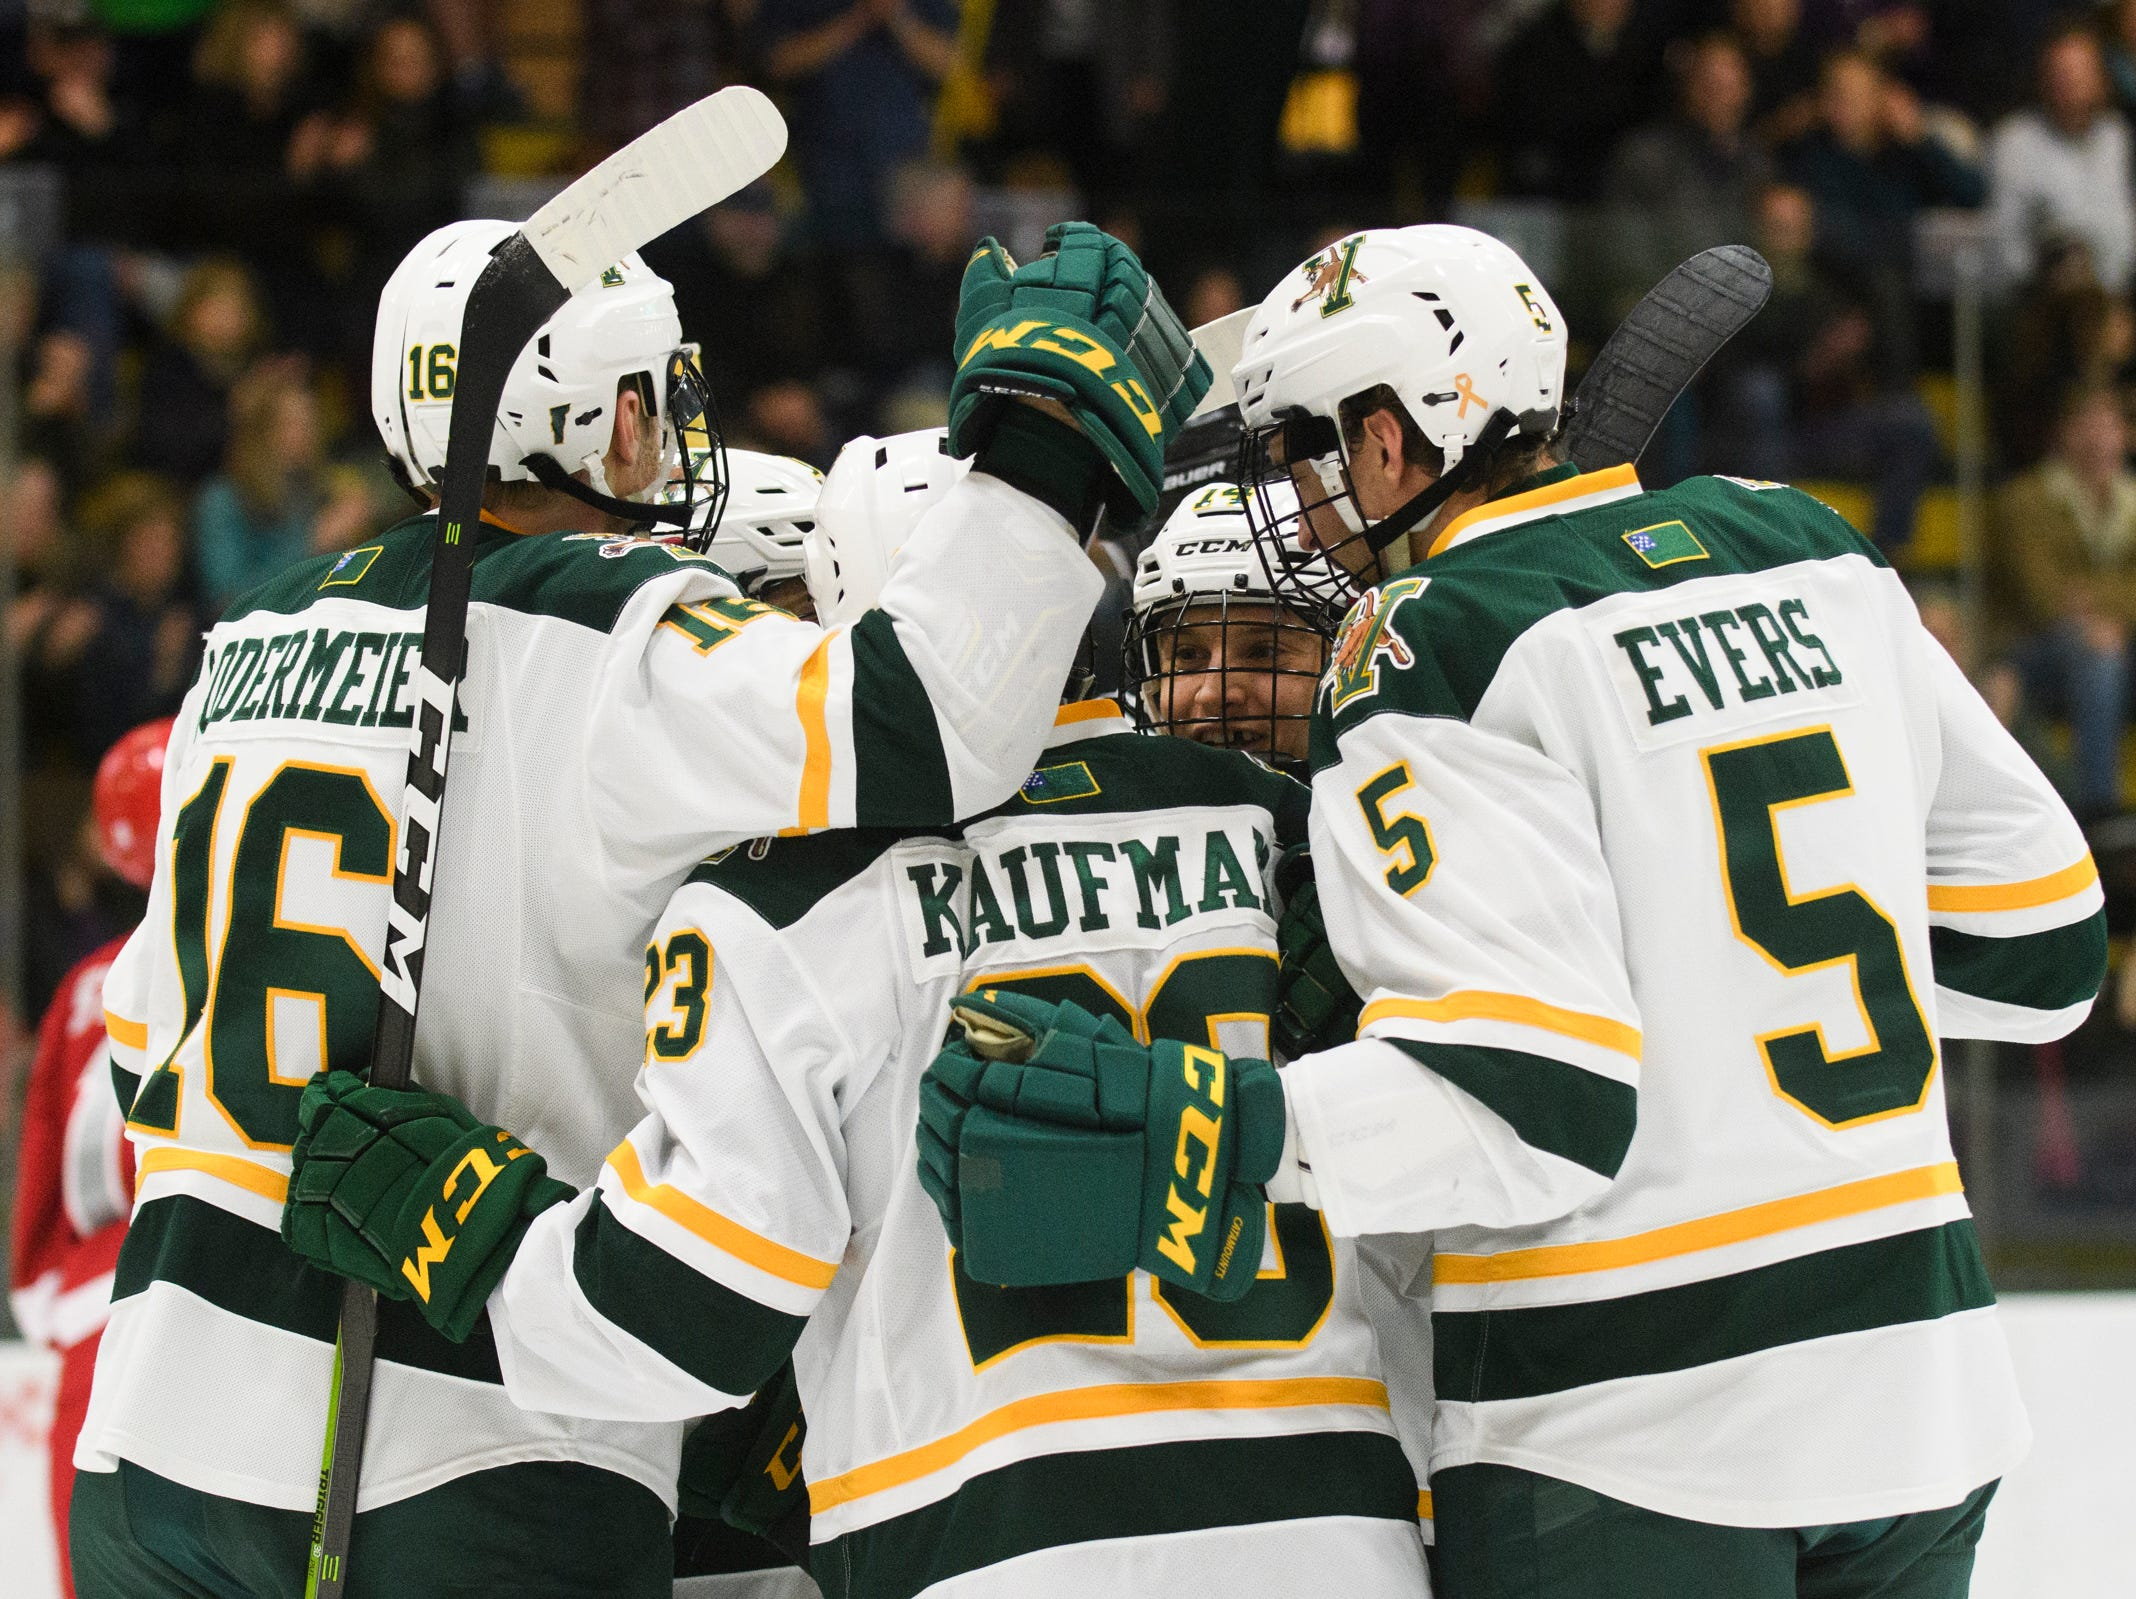 Vermont celebrates a goal during the men's hockey game between the Sacred Heart Pioneers and the Vermont Catamounts at Gutterson Field House on Friday night January 4, 2019 in Burlington.